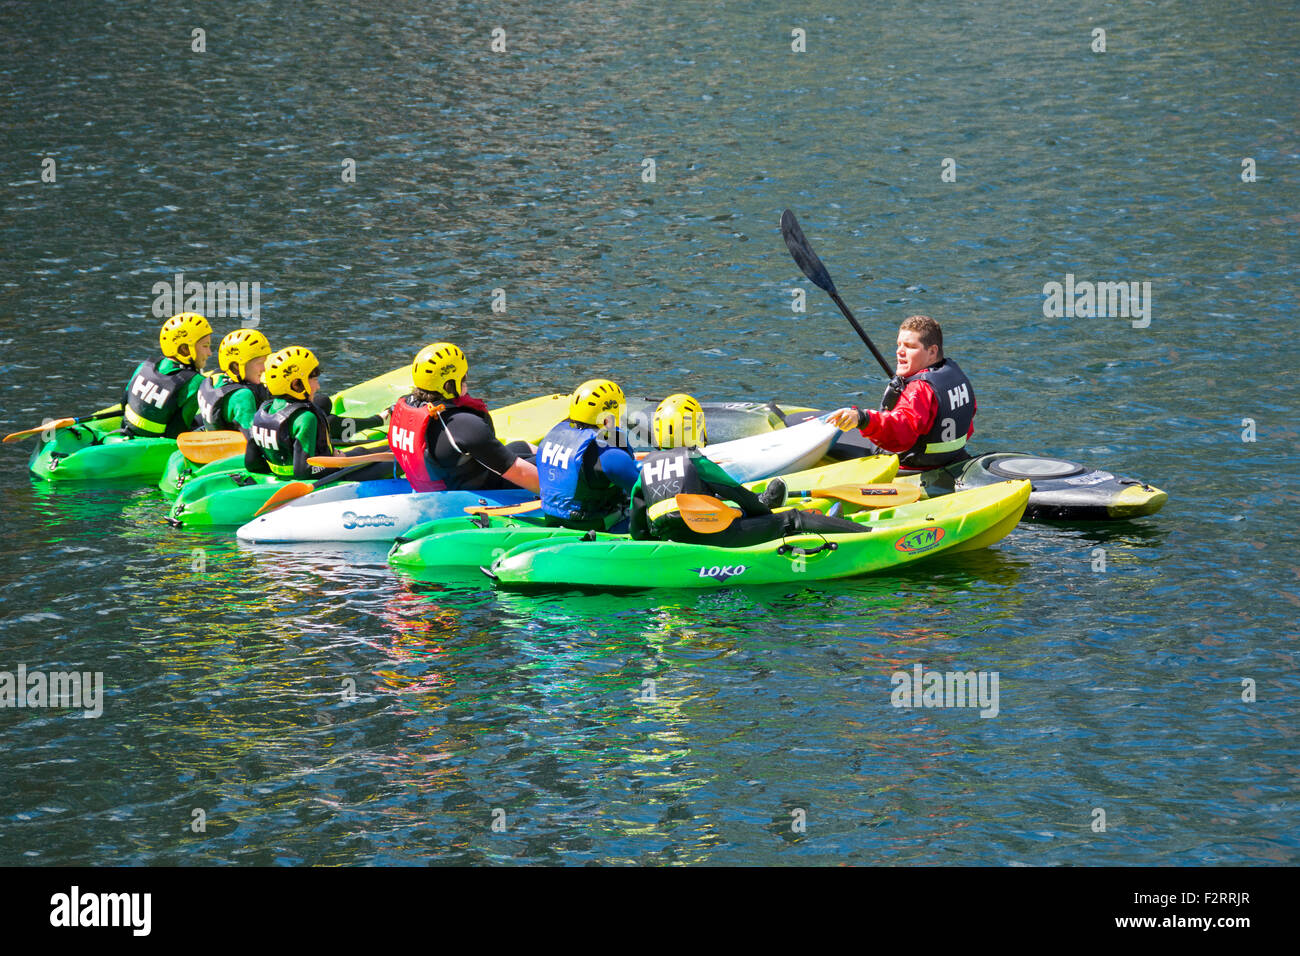 Children undergoing kayaking tuition at Huron Basin, Salford Quays, Manchester, England, UK - Stock Image